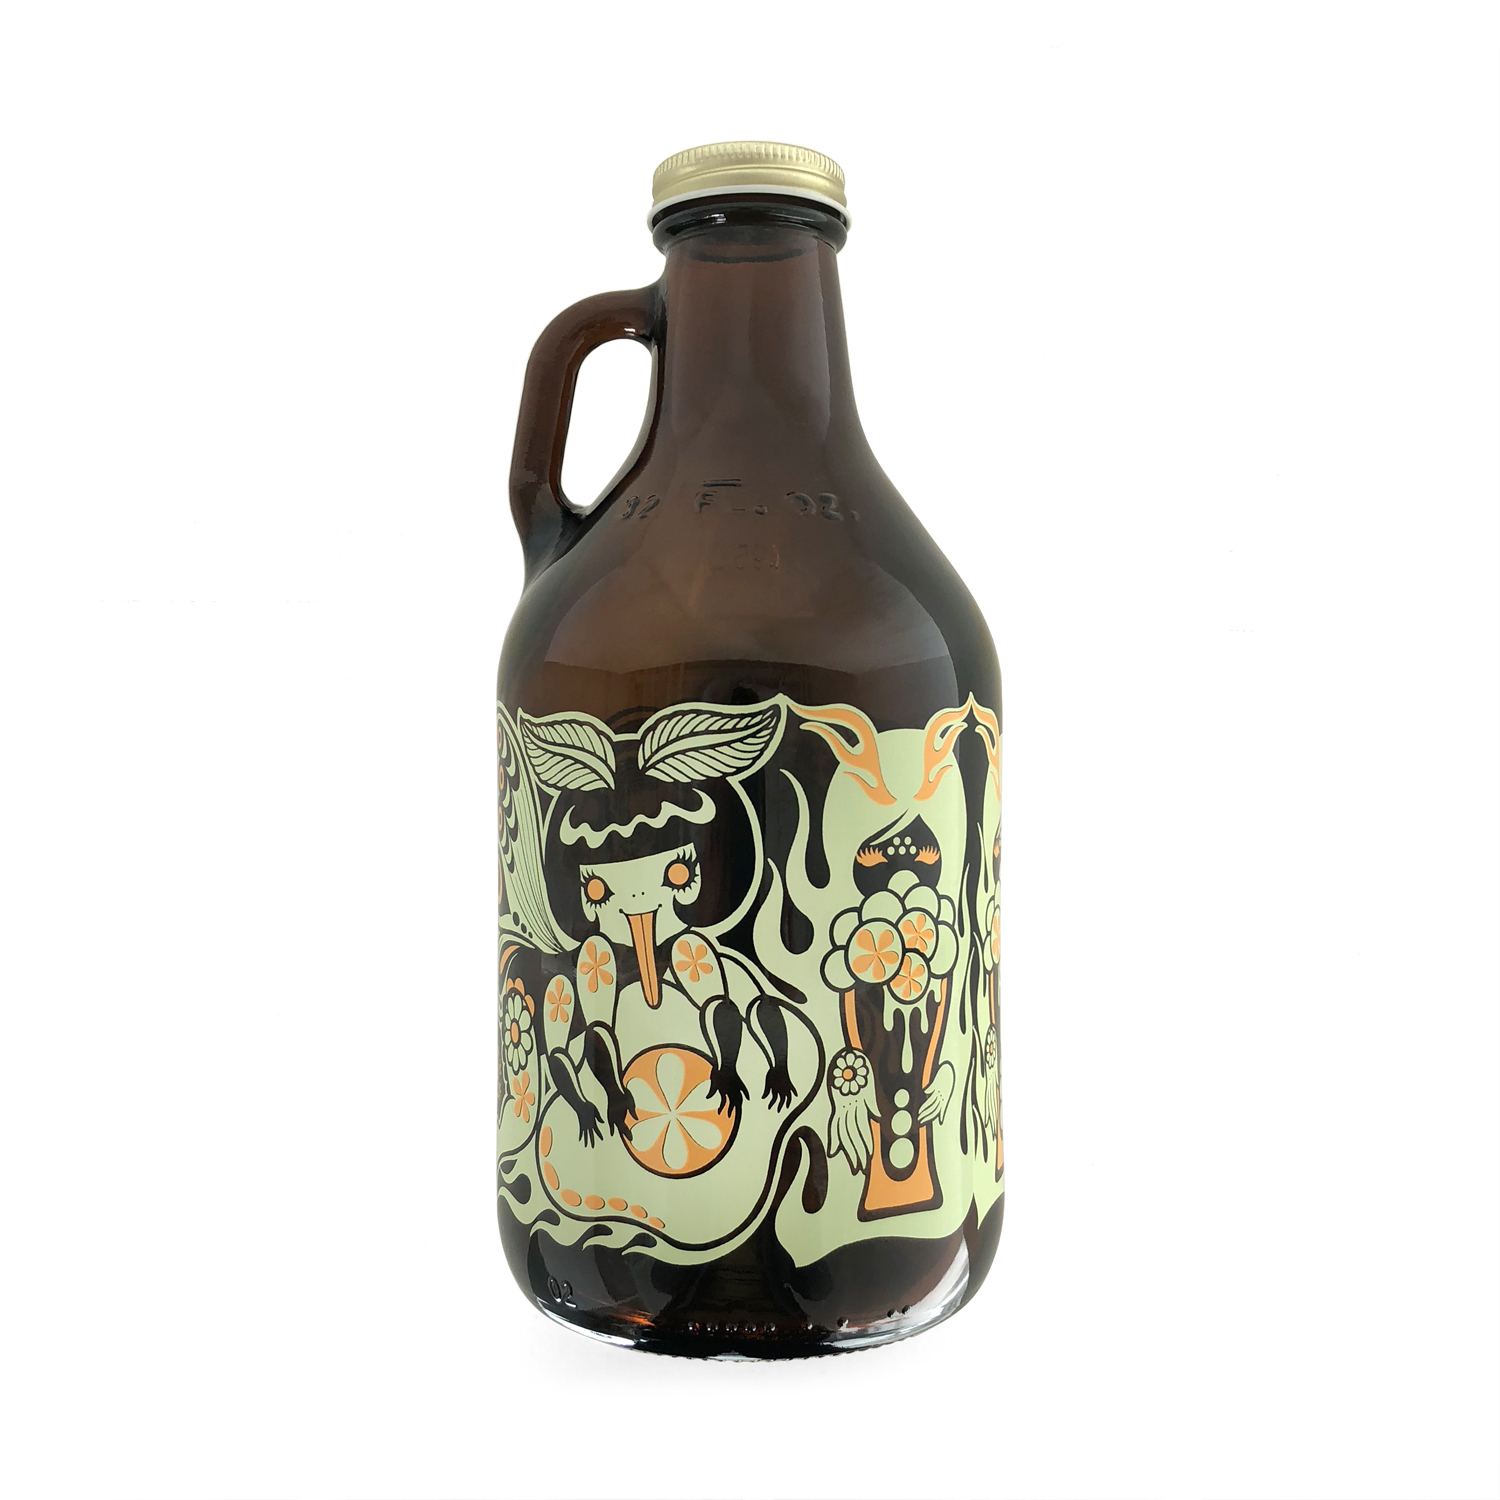 NEW RELEASE DATE FOR BEER GROWLER_f0126666_06513376.jpeg